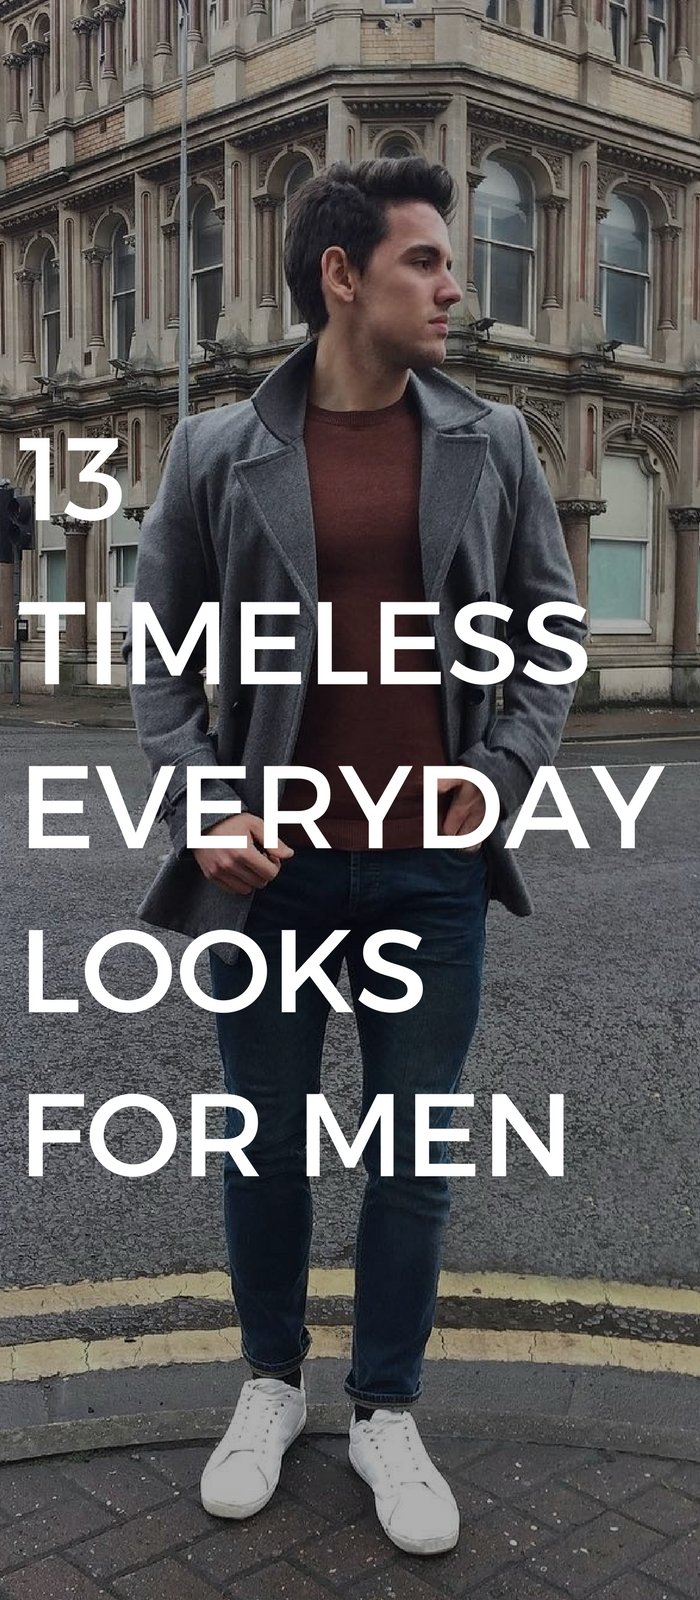 EVERYDAY_SLOOKS_FOR_MEN_12.jpg